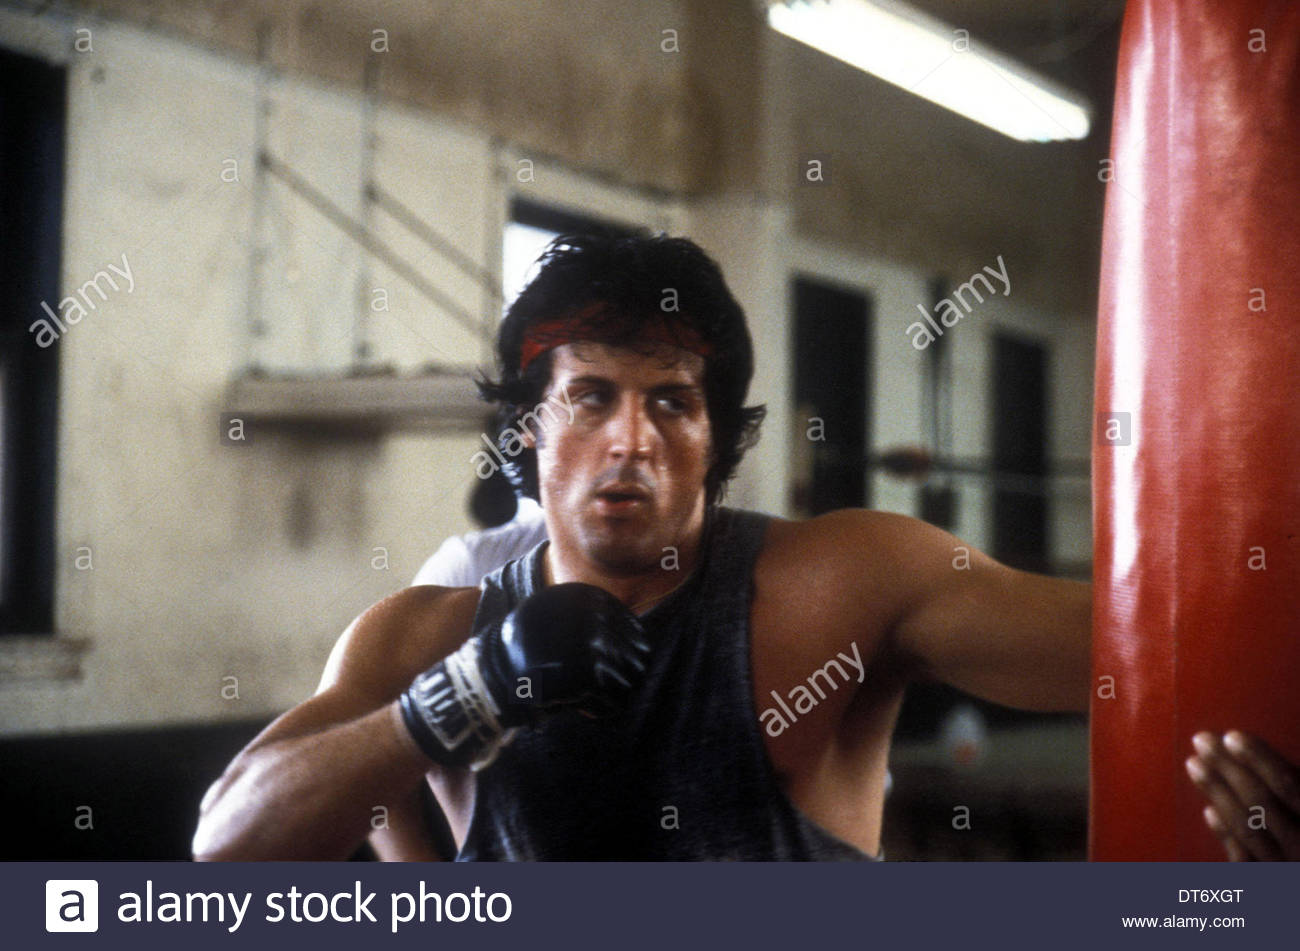 SYLVESTER STALLONE ROCKY II (1979) - Stock Image